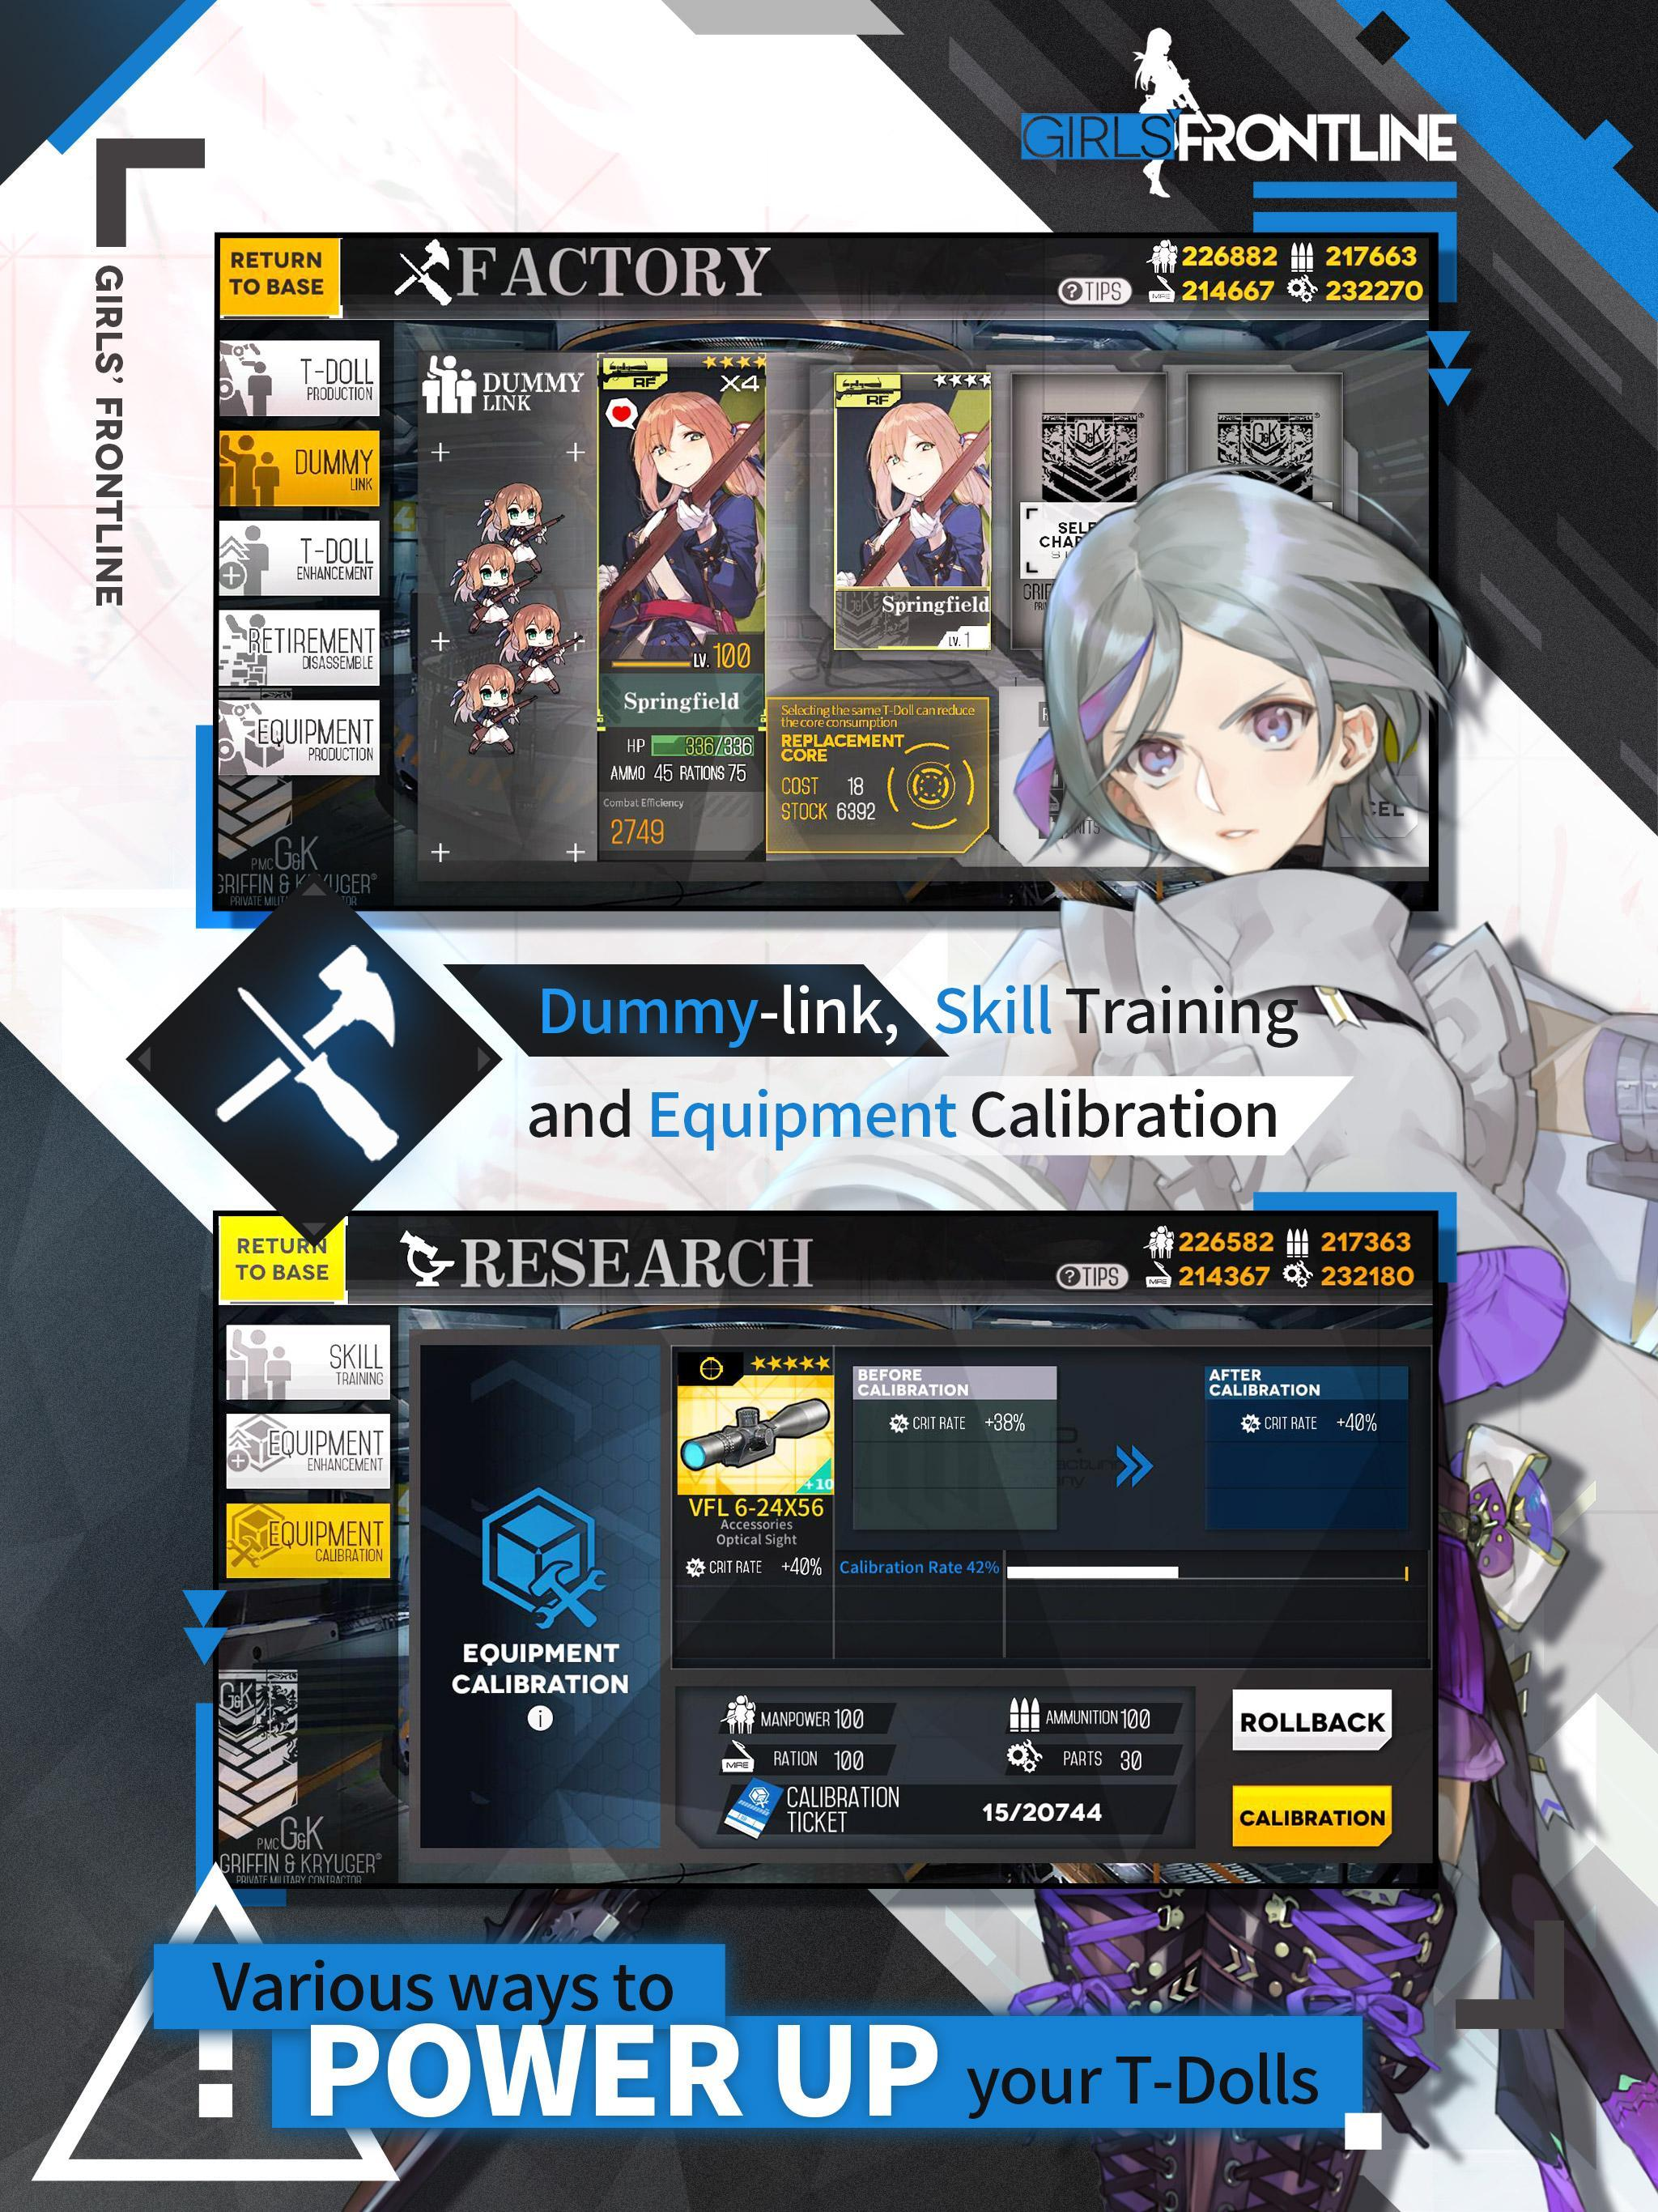 Girls' Frontline for Android - APK Download